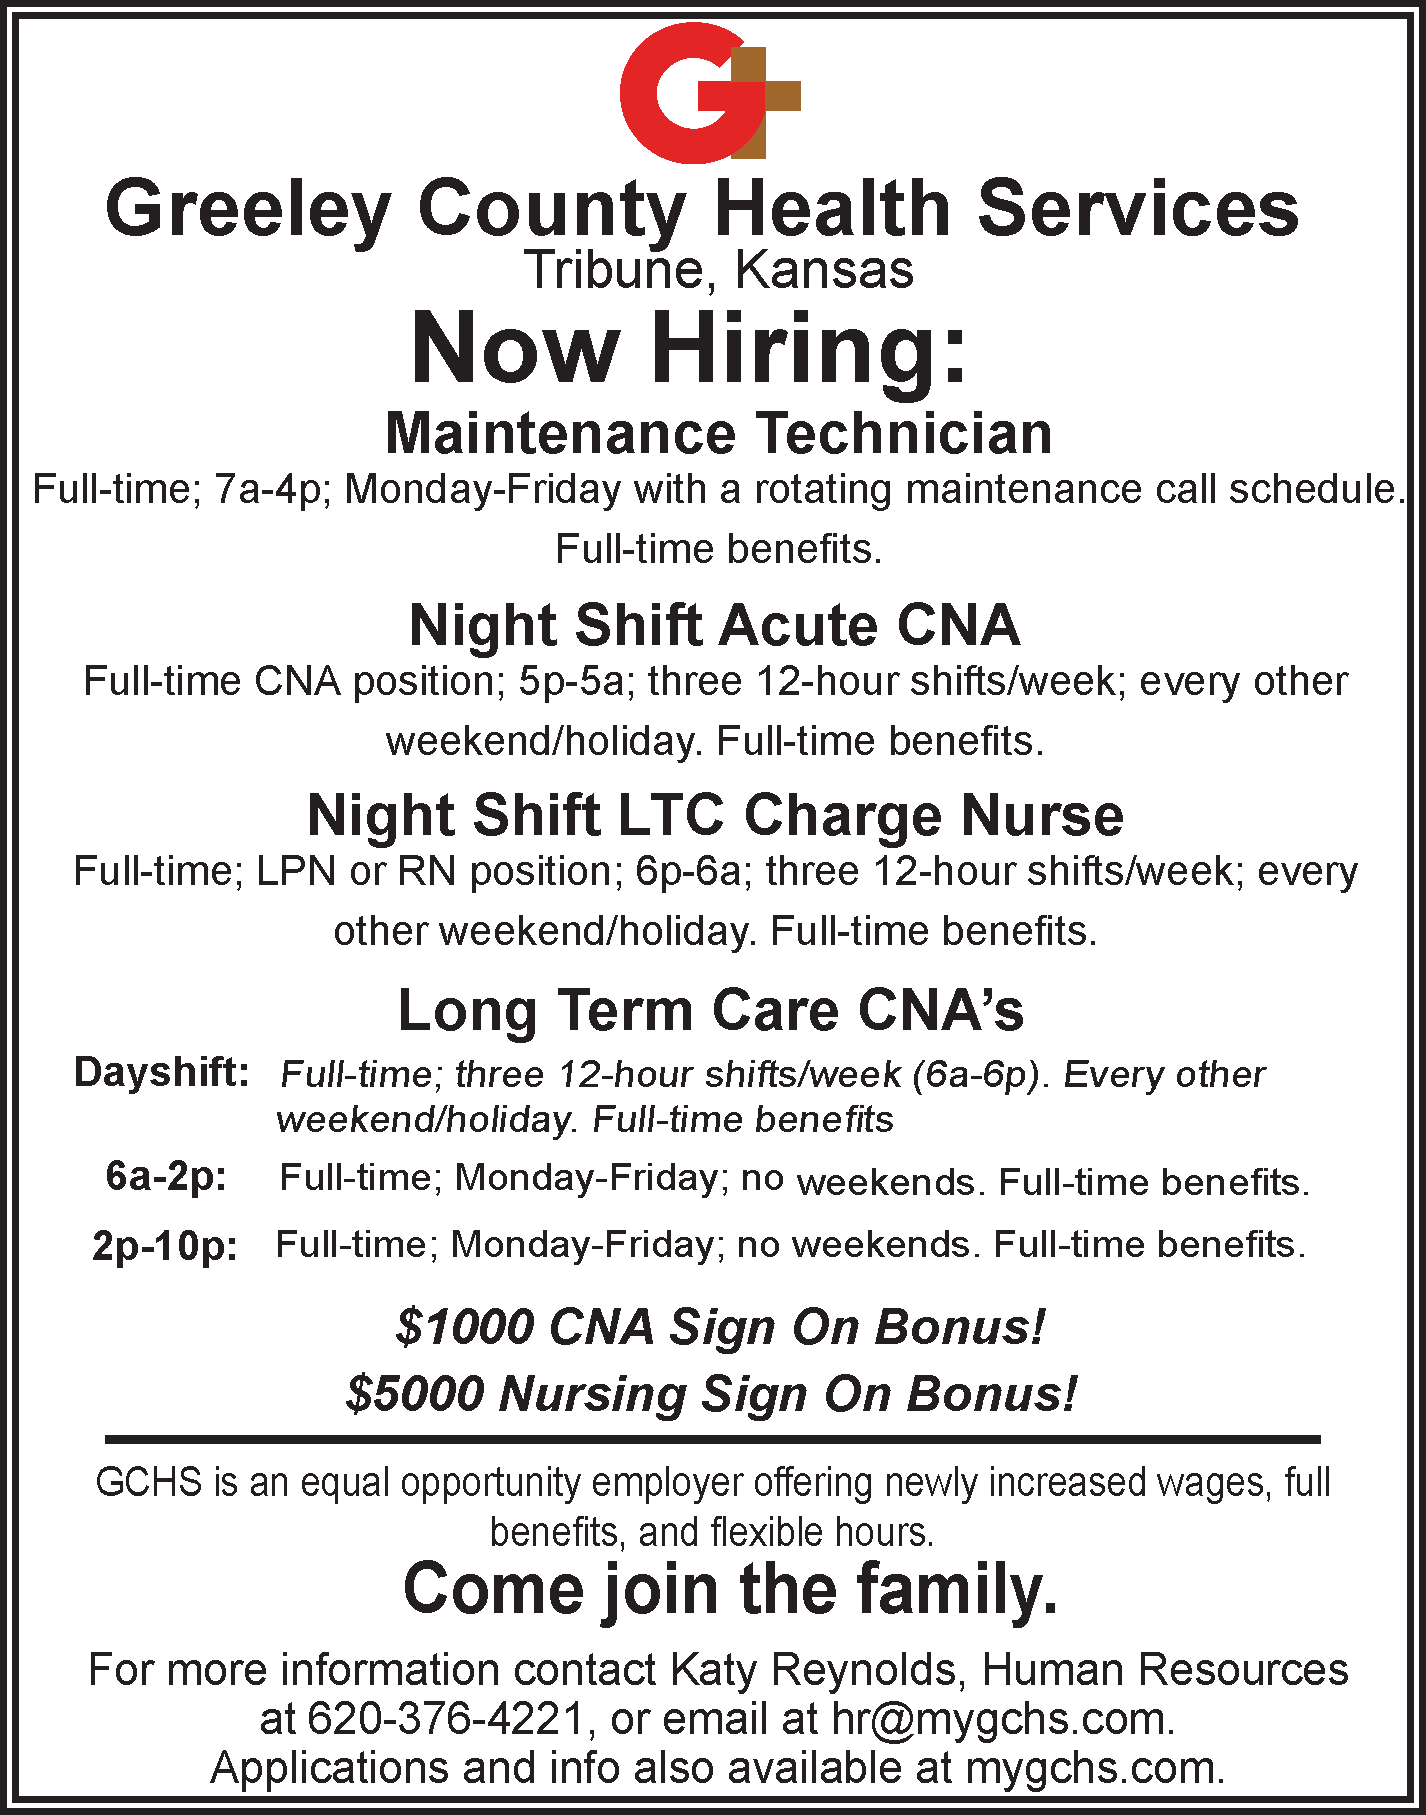 ADV - Greeley County Health Services - Now Hiring - February 9, 2018